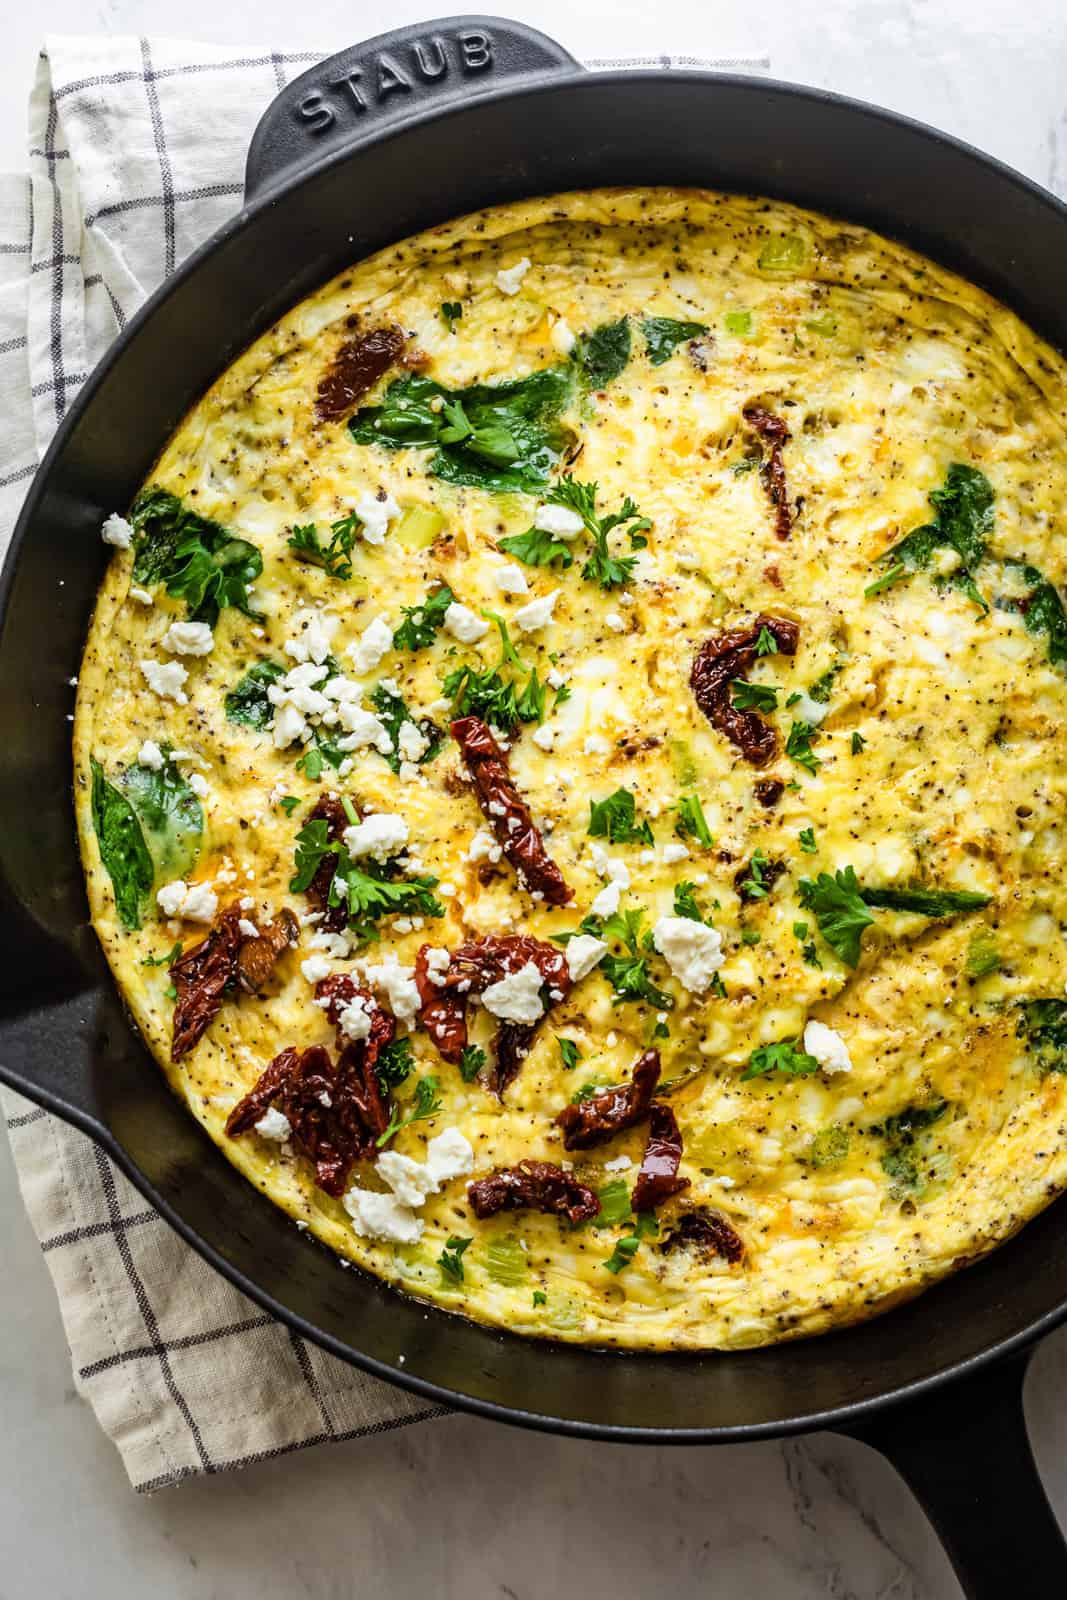 Mediterranean Frittata in a cast iron skillet topped with sundried tomatoes, feta cheese and parsley